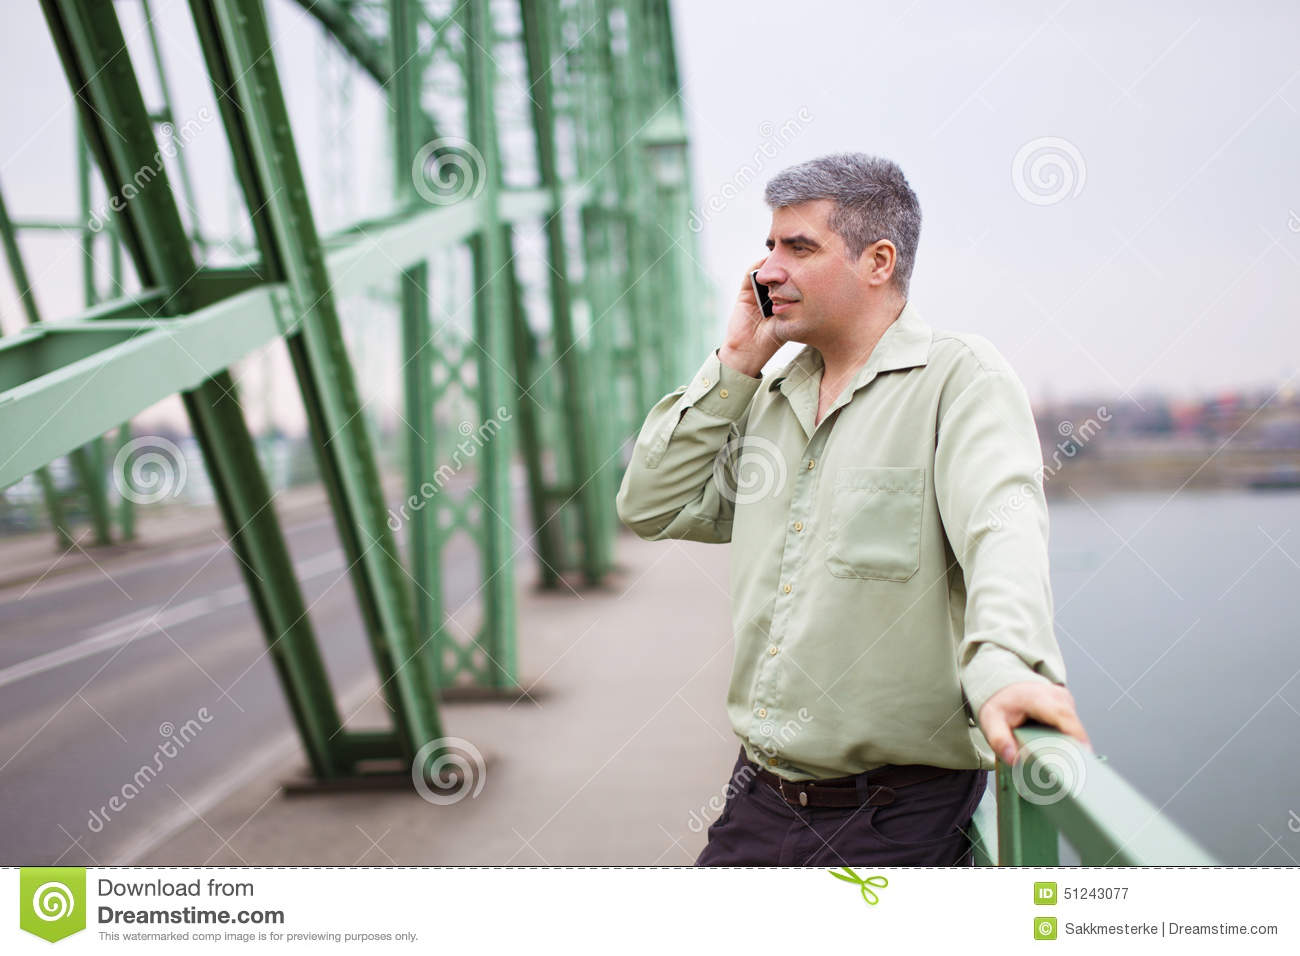 Young Entrepreneur Calling At Bridge Stock Photo - Image: 51243077